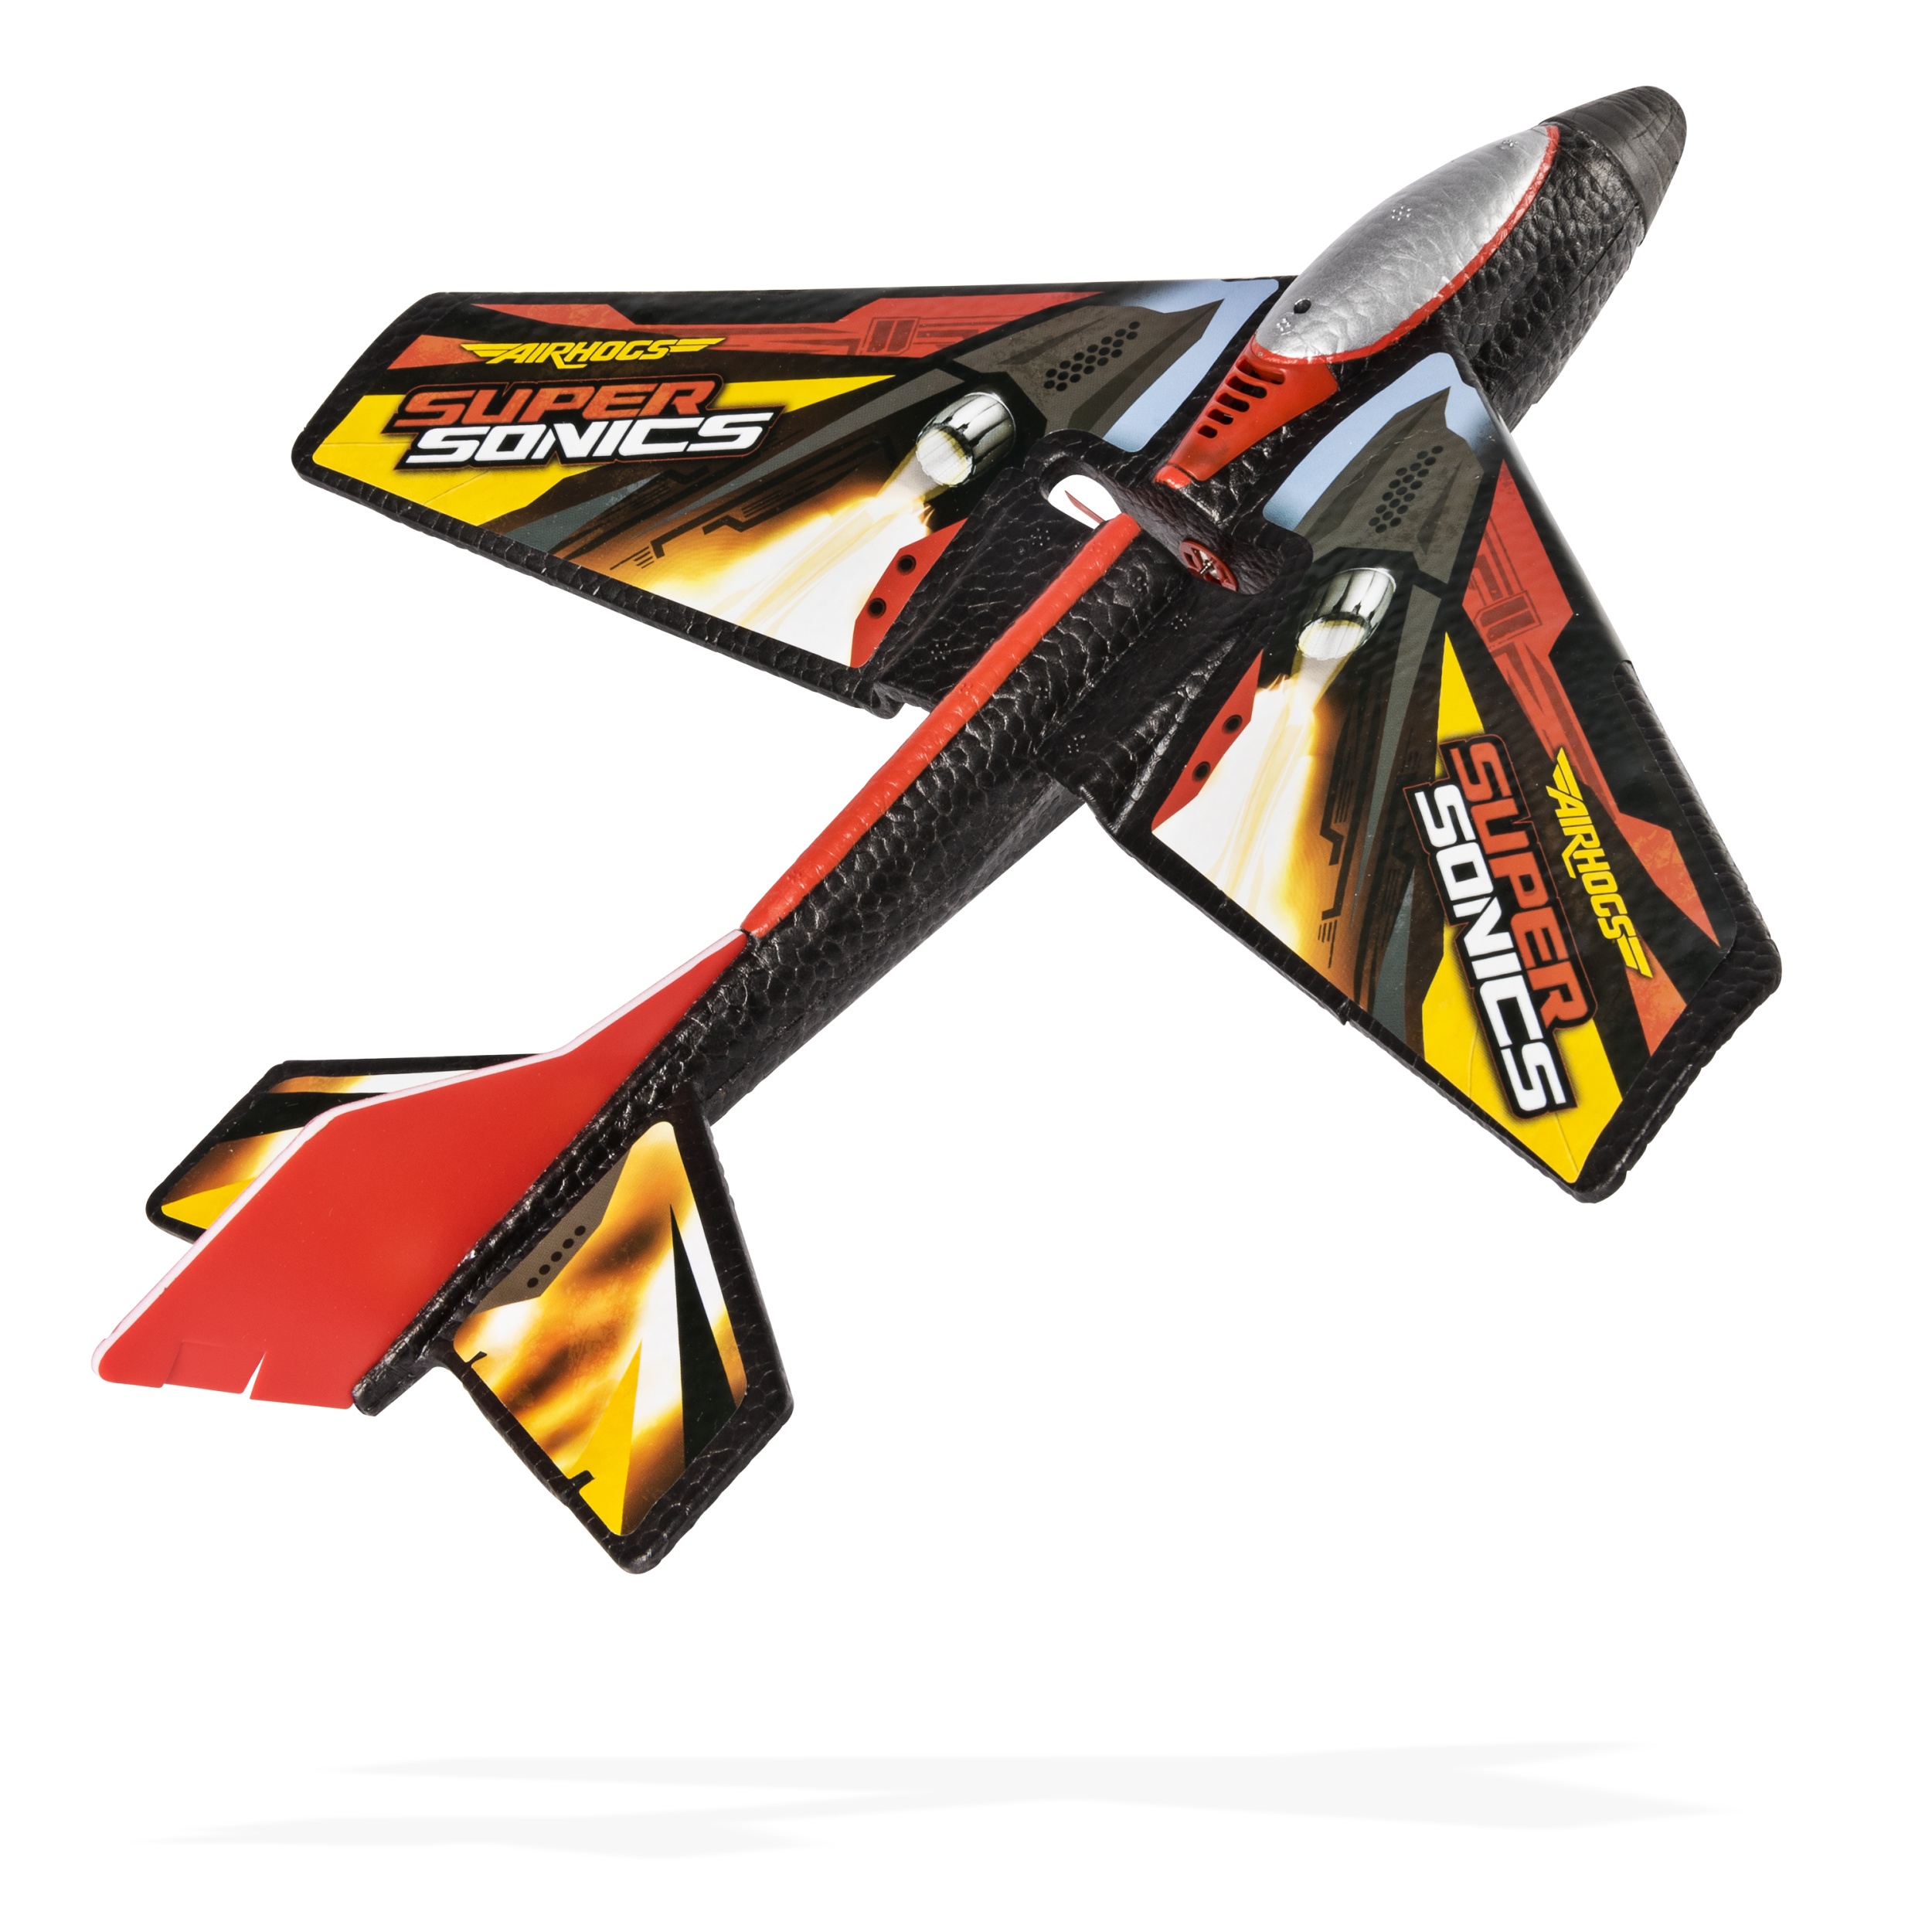 7cc82c74e26 Air Hogs - Sonic Plane High-Speed Flyer with Real Motor Sounds - Walmart.com